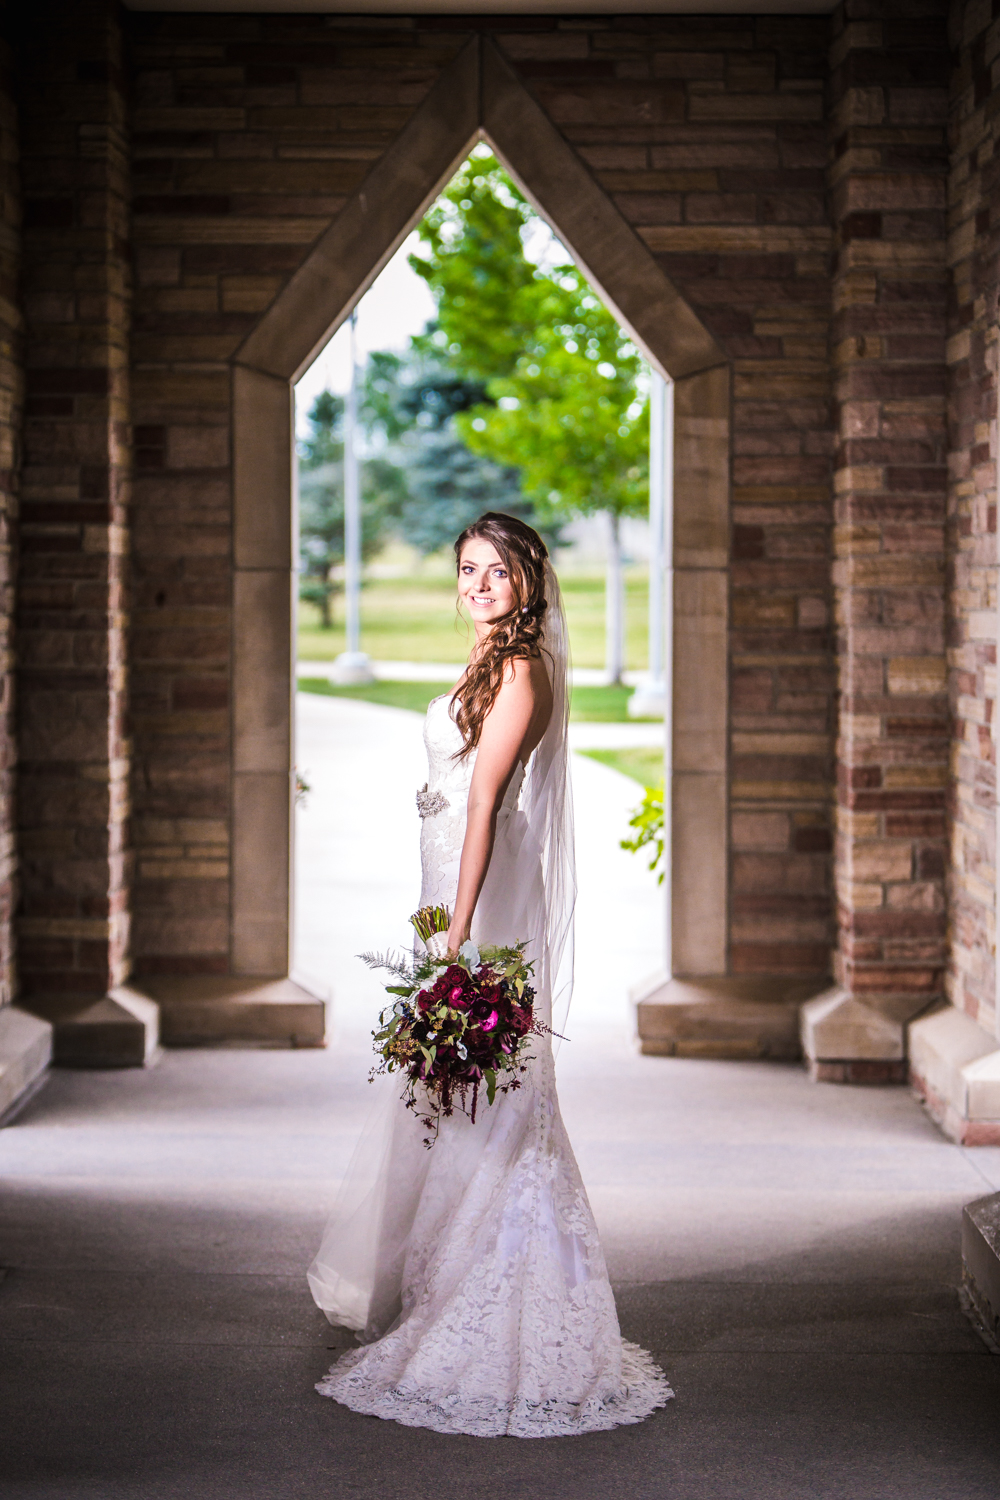 Bride outside Cherry Hills Community Church.   hotographed by JMGant Photography, Denver Colorado wedding photographer.